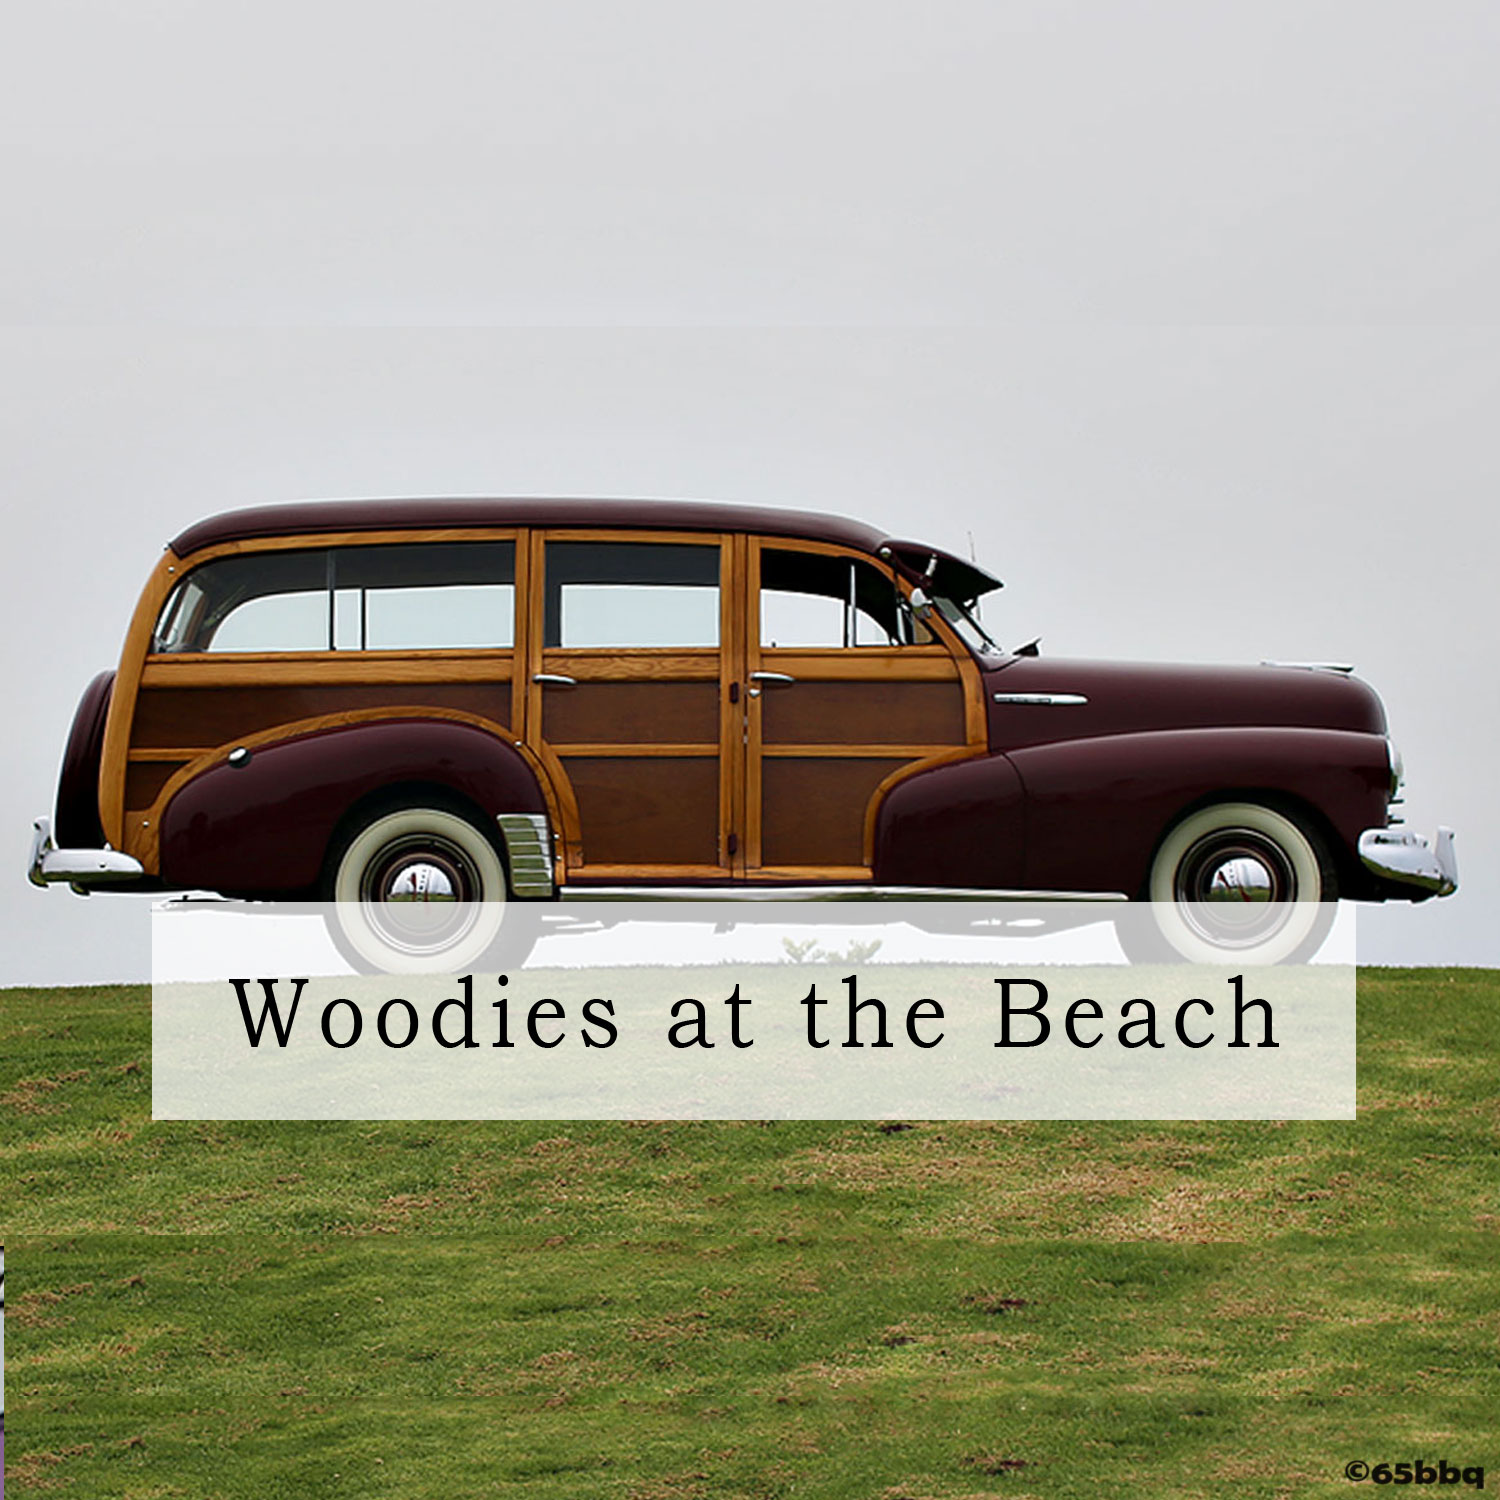 Woodies at the Beach